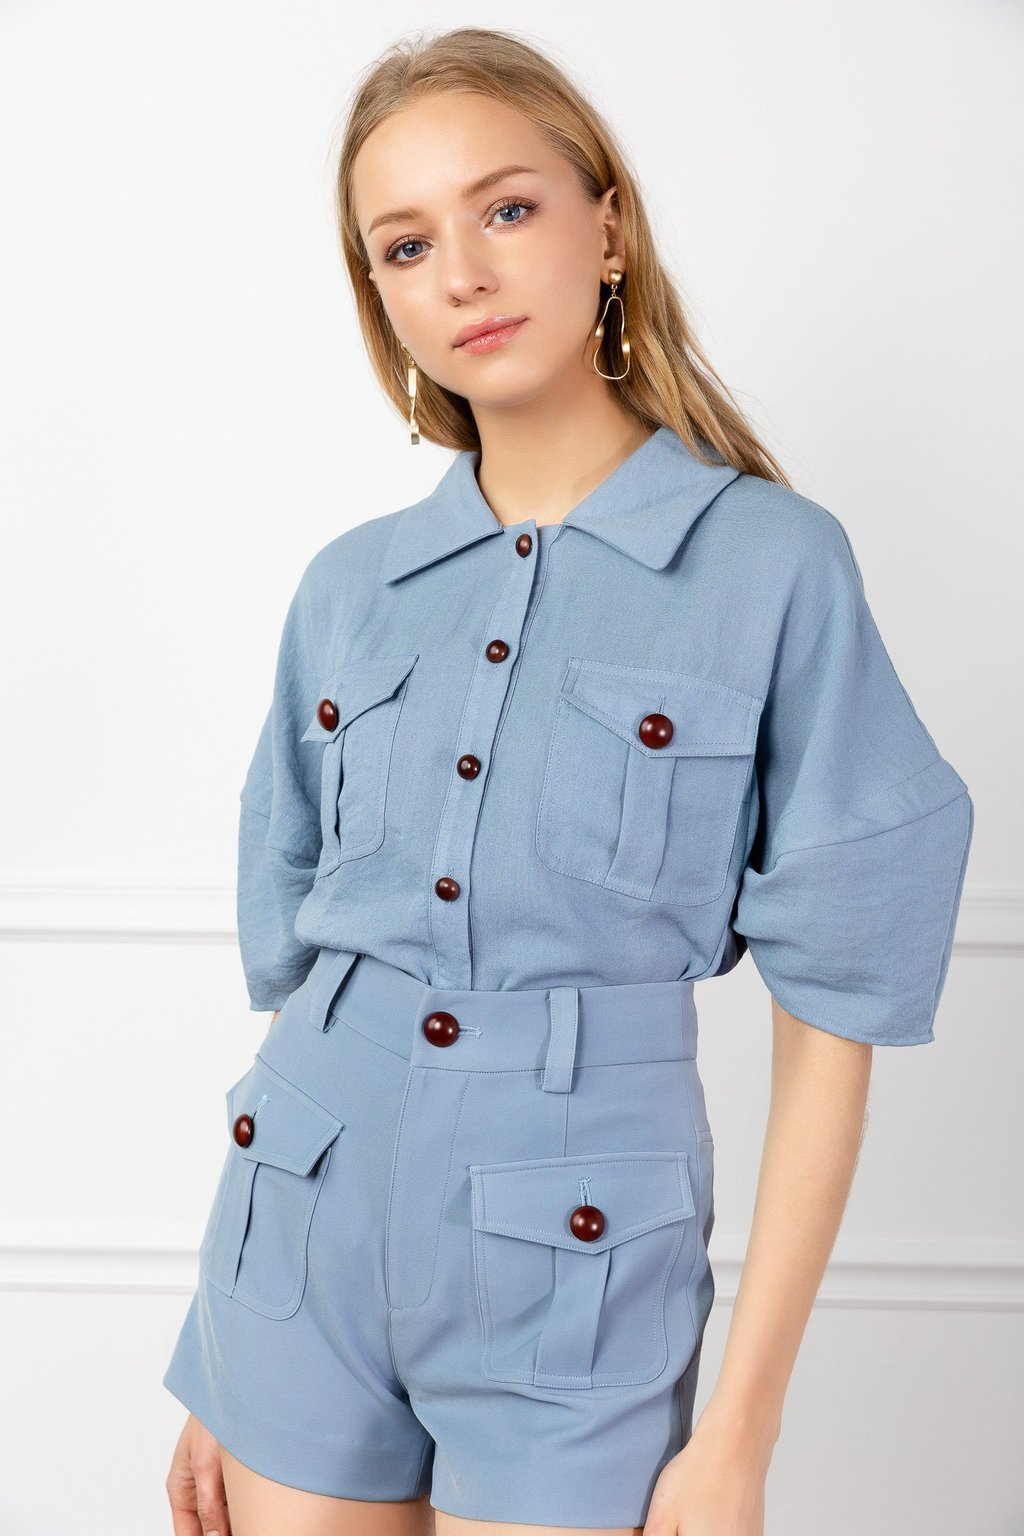 Blue Barry Utility Shirt by J.ING LA women's fashion